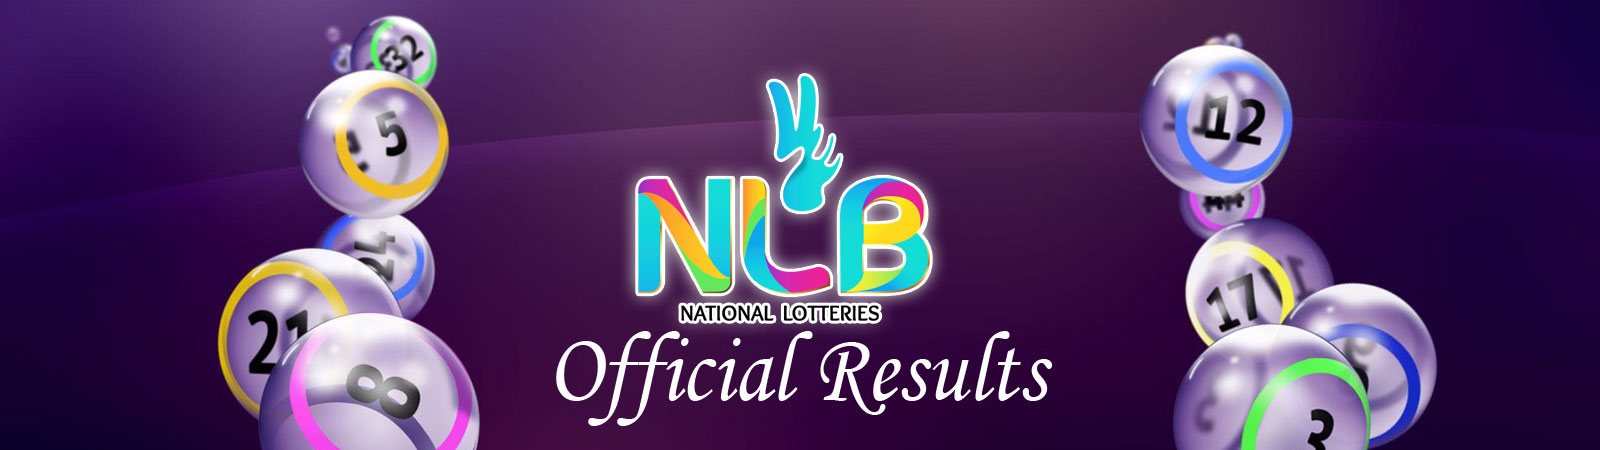 Lottery Results | National Lotteries Board, Sri Lanka